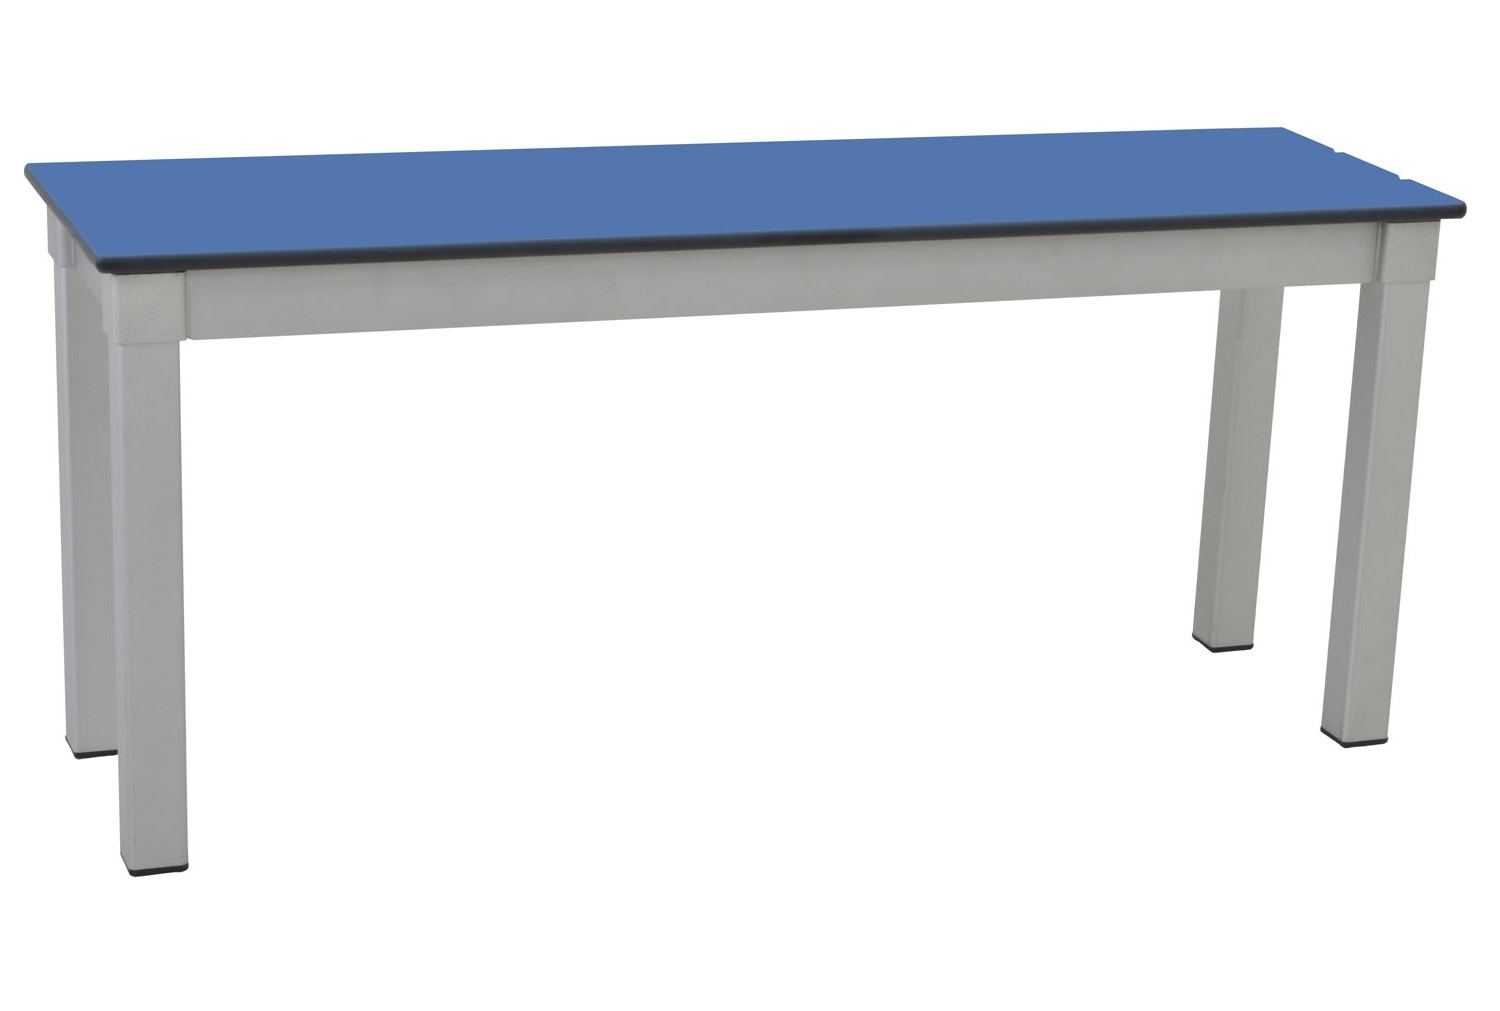 Gopak Enviro Compact Outdoor Bench With Solid Top